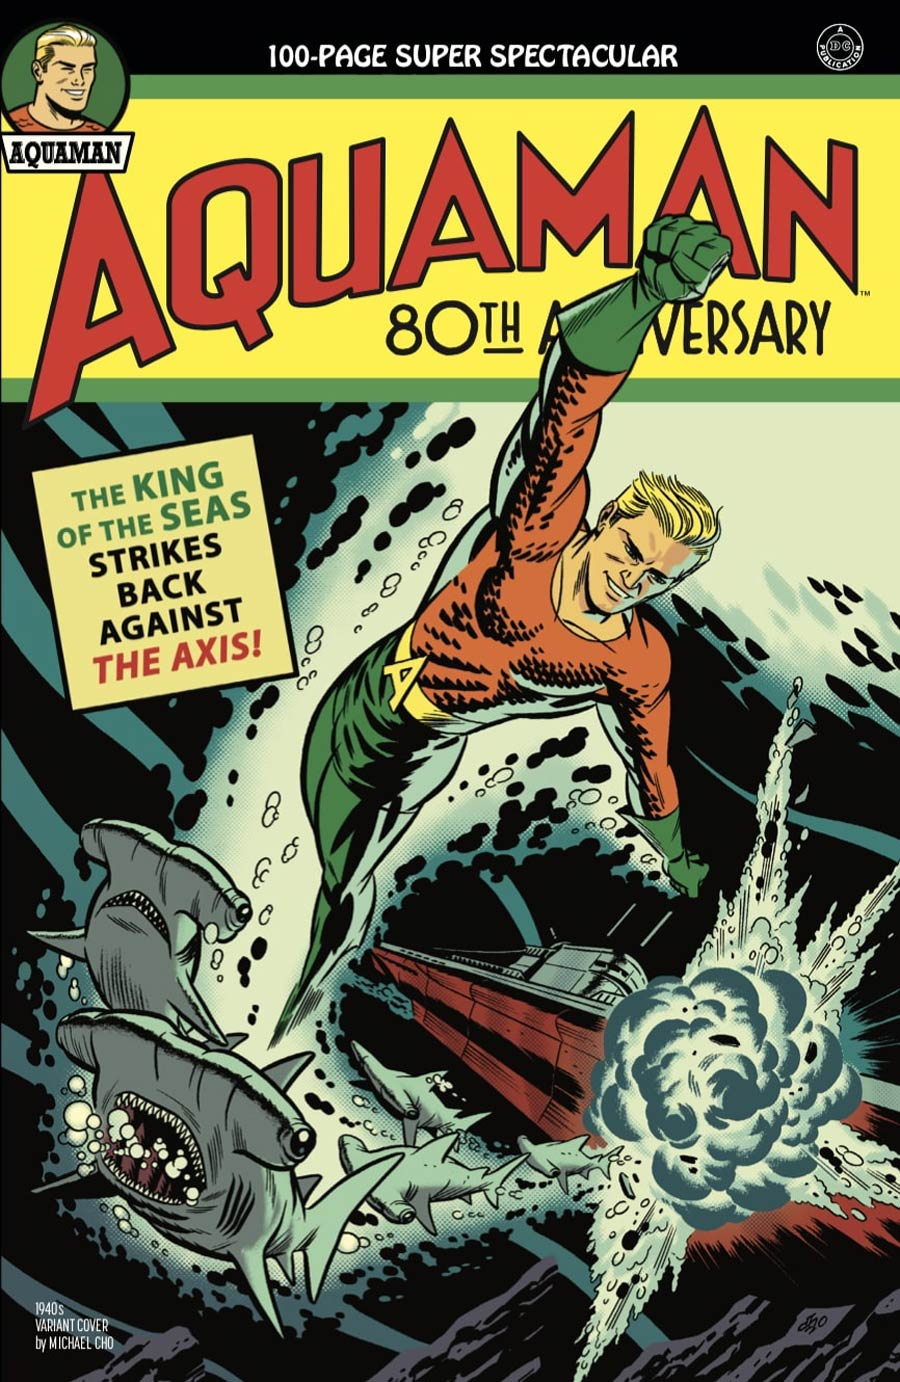 Aquaman 80th Anniversary 100-Page Super Spectacular #1 (One Shot) Cover B Variant Michael Cho 1940s Cover